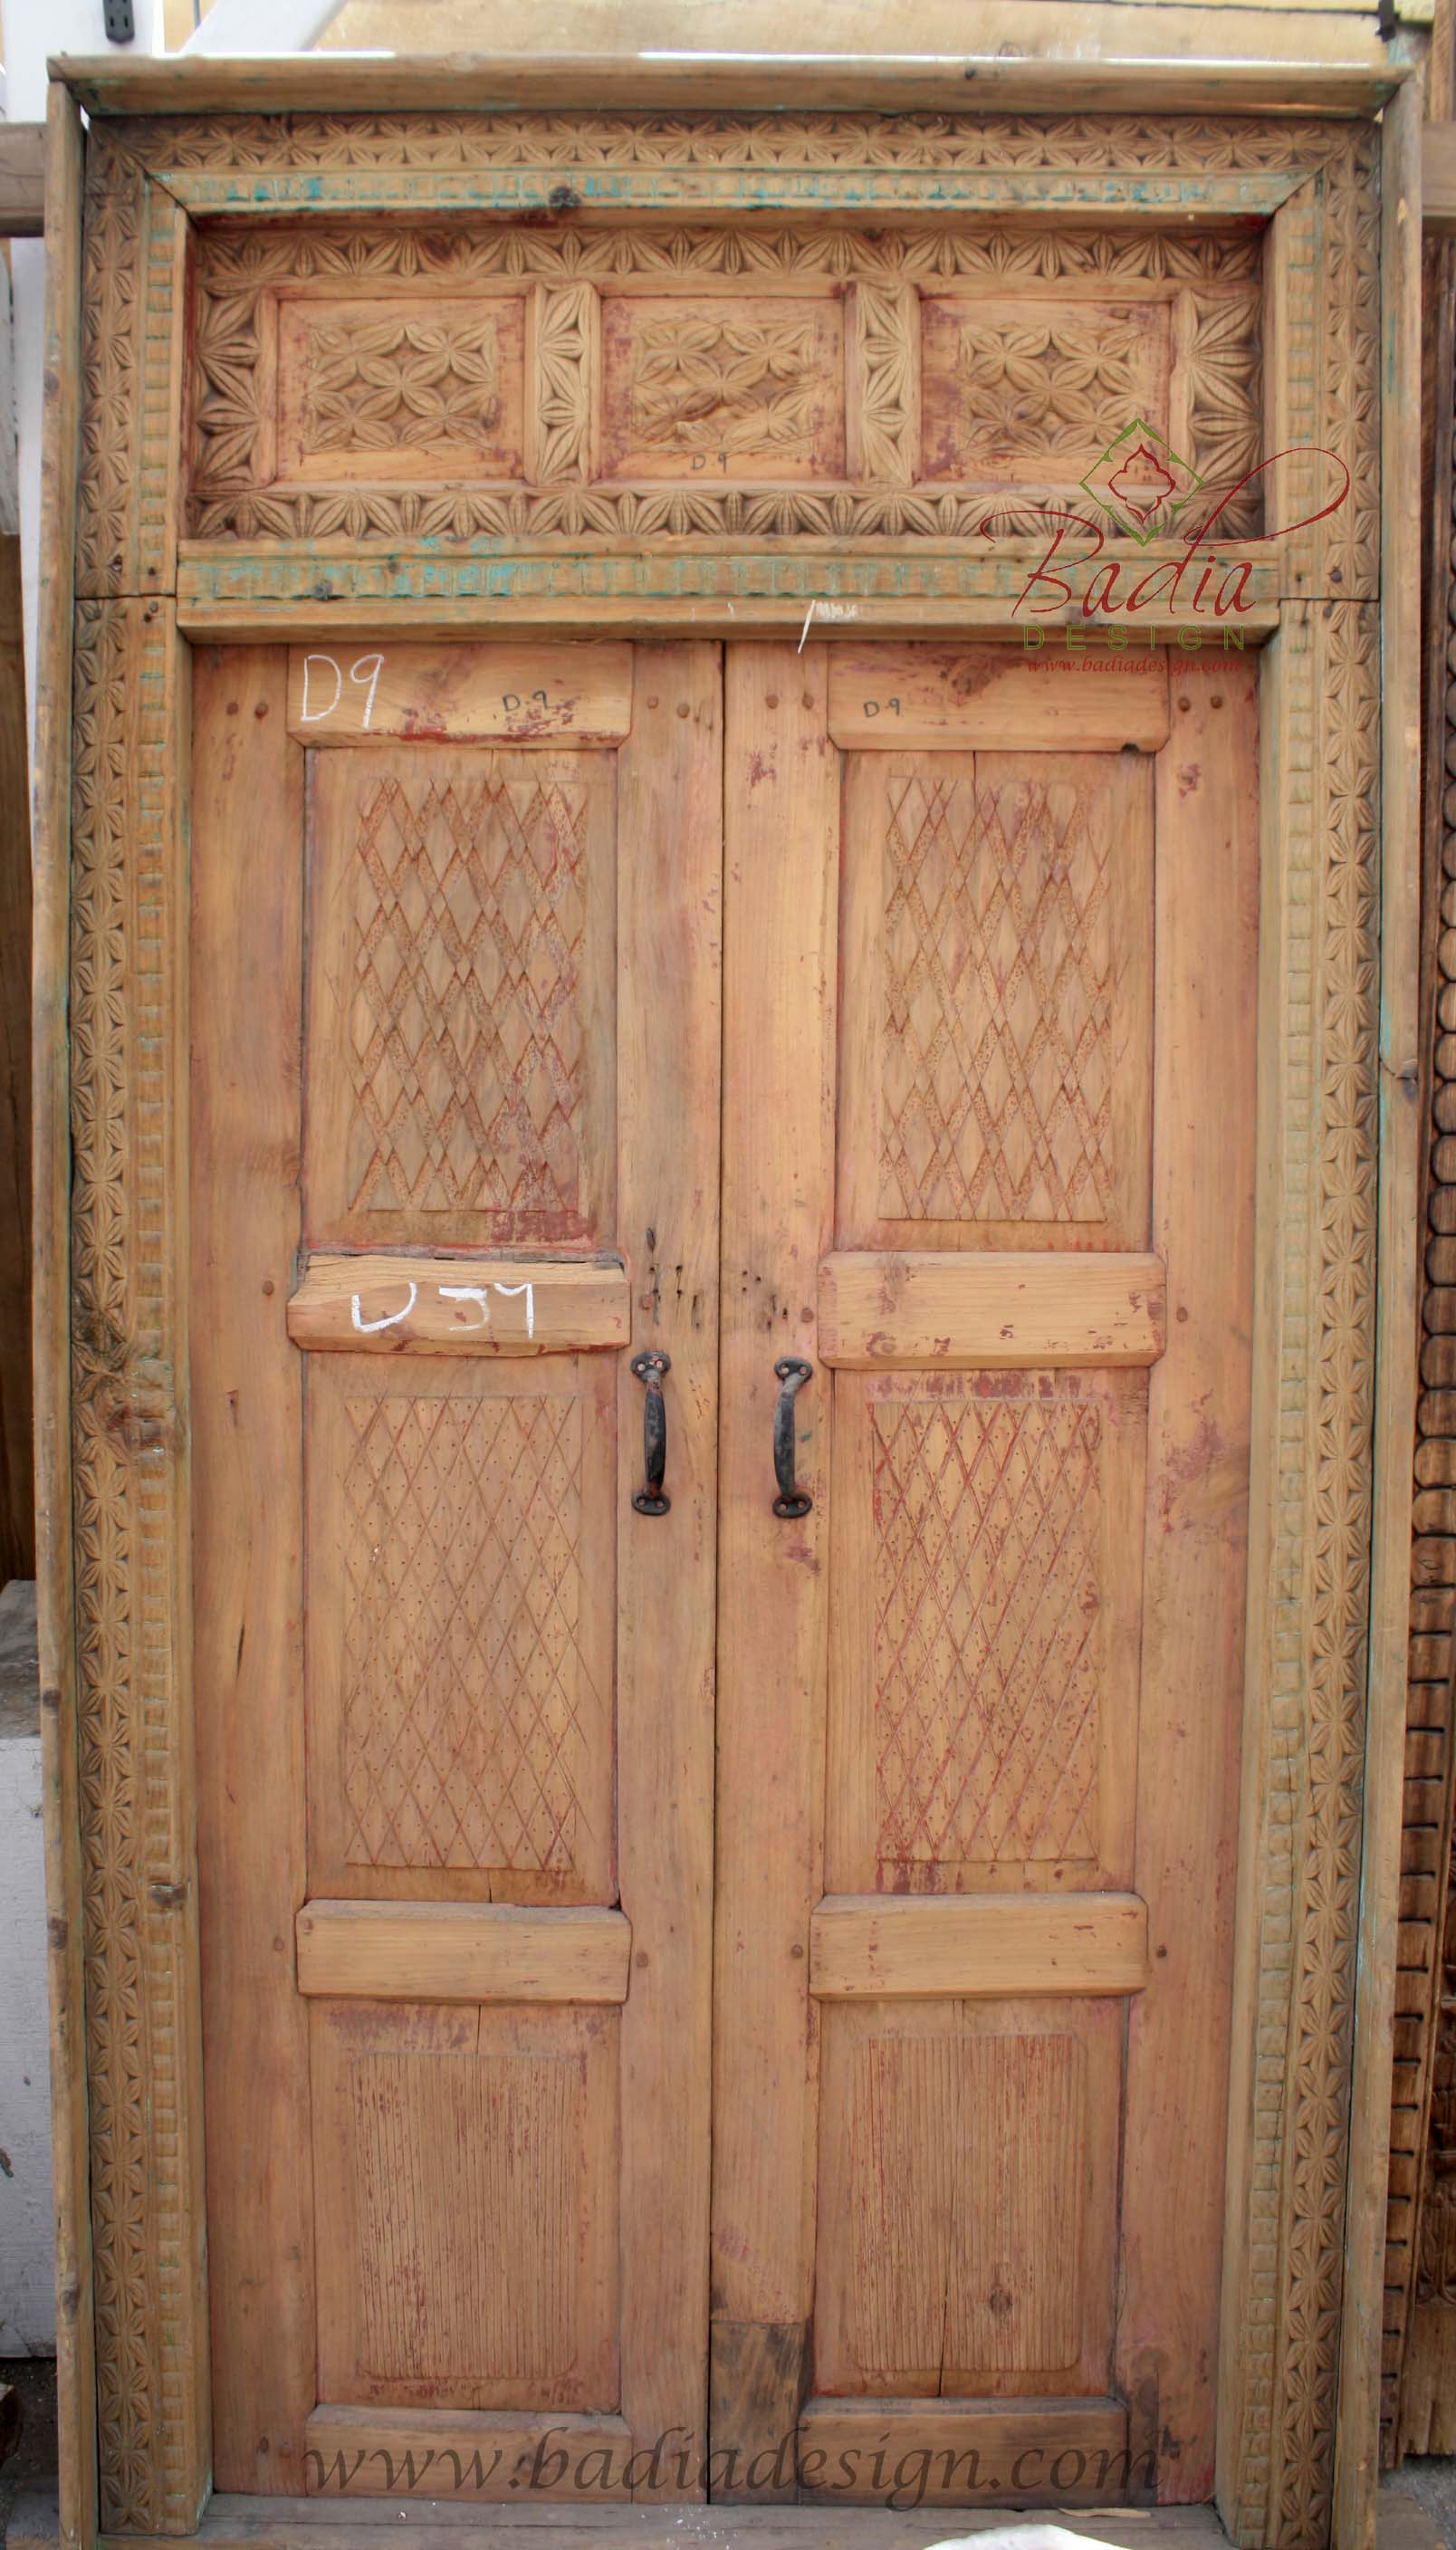 large-carved-wooden-door-cwd013.jpg